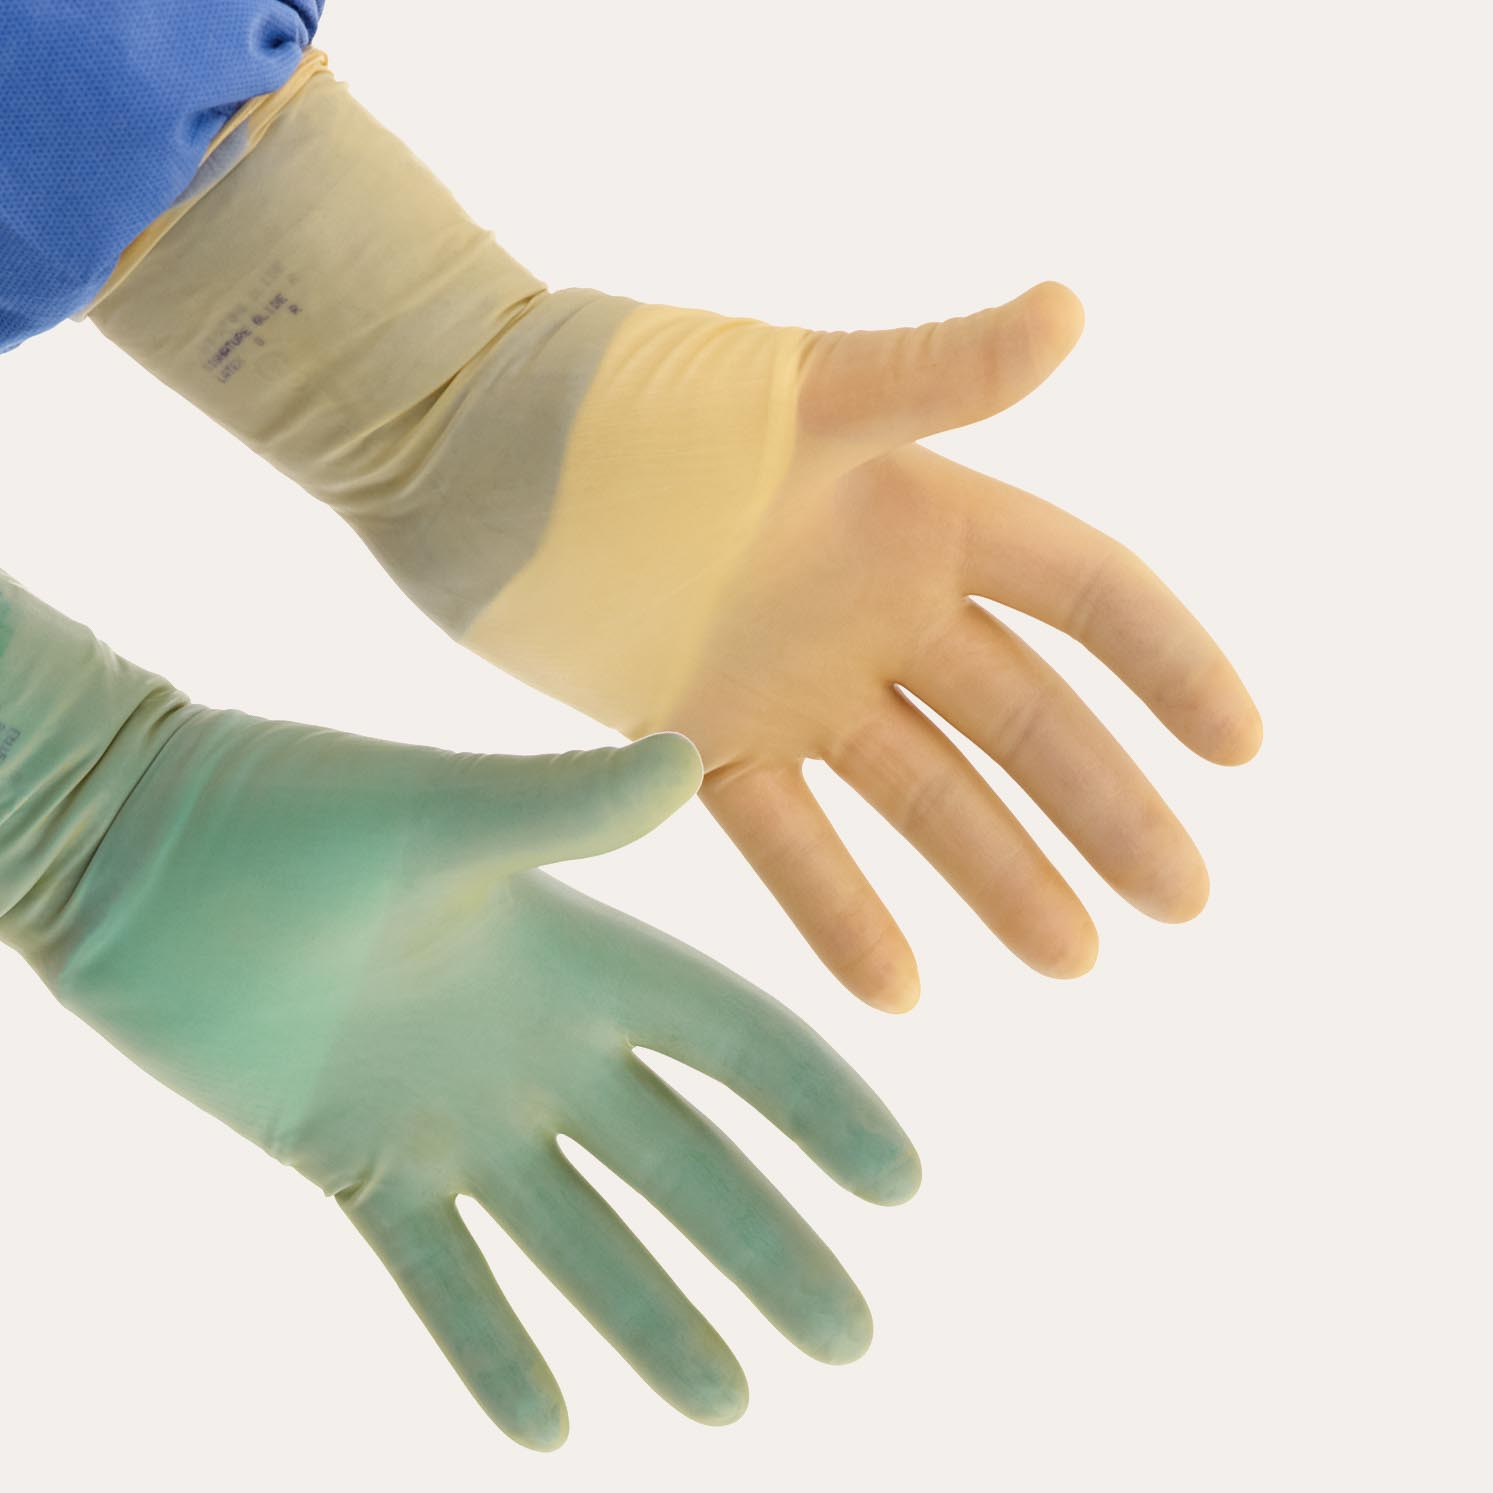 Surgical and Exam Gloves